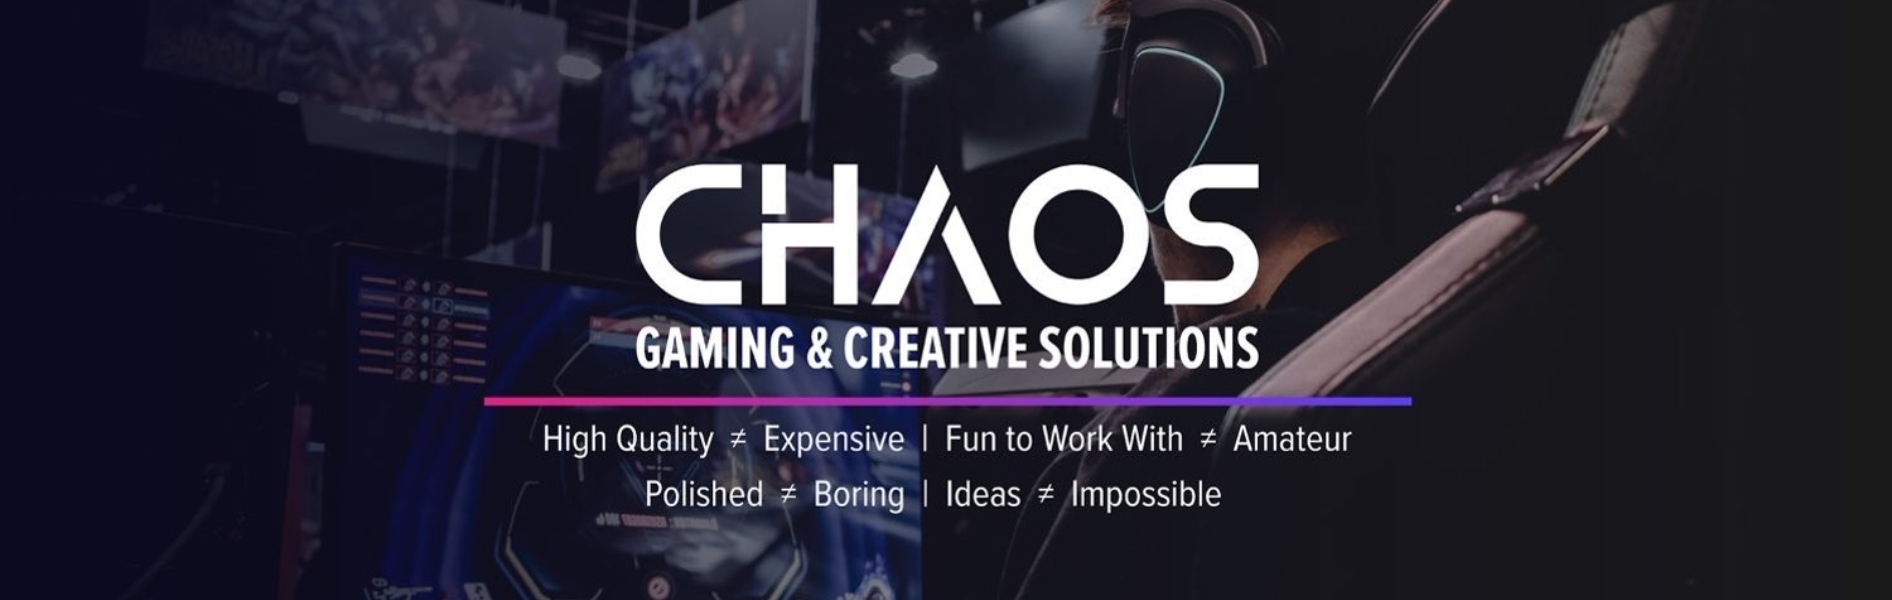 Chaos Gaming & Creative Solutions Banner